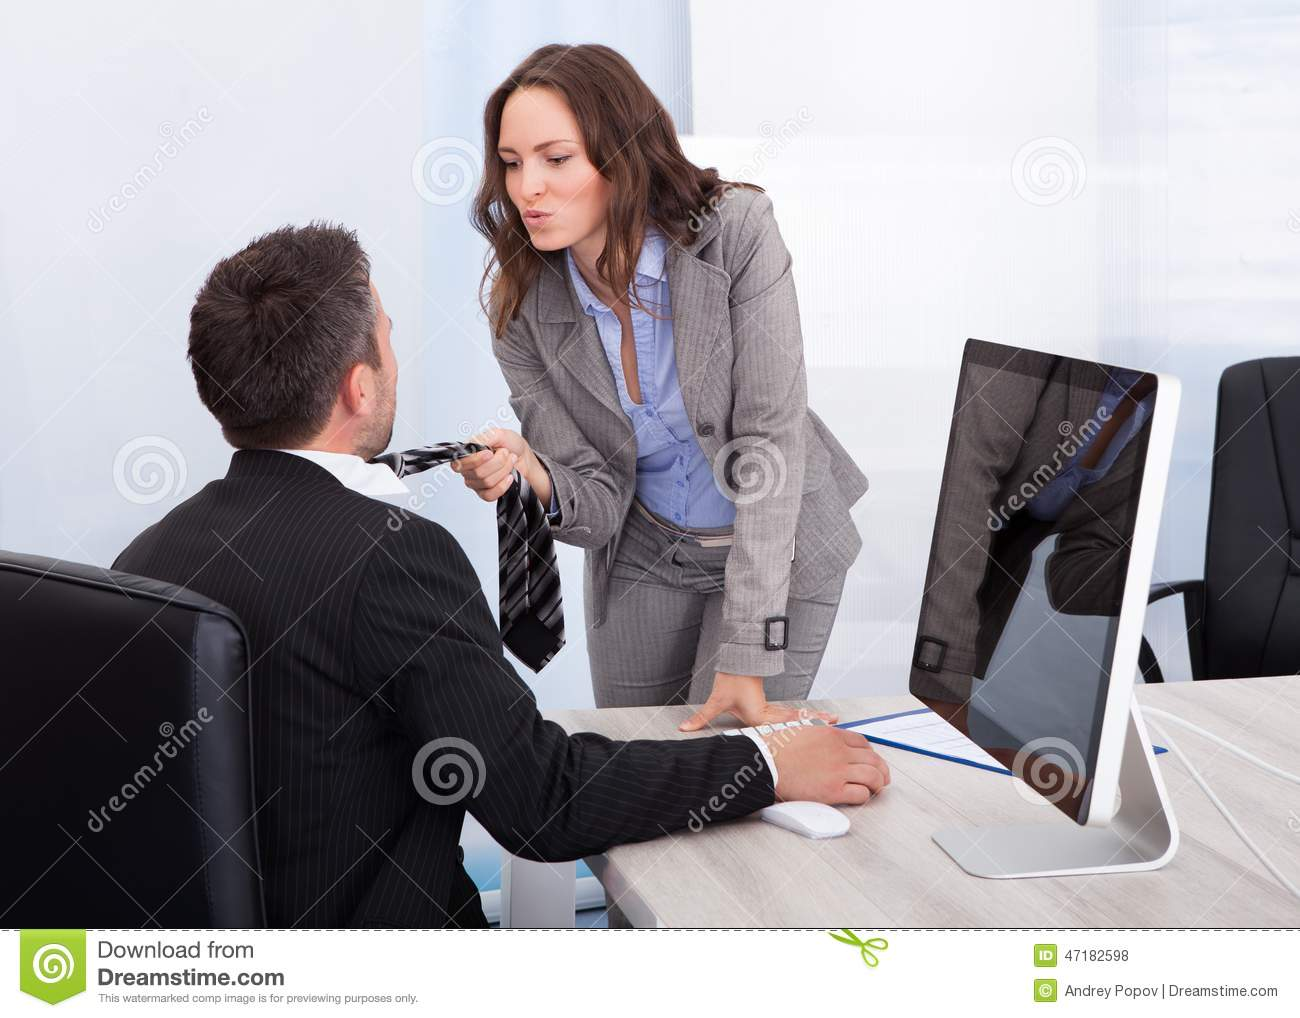 Business Couple Flirting In Office Stock Photo - Image of ...